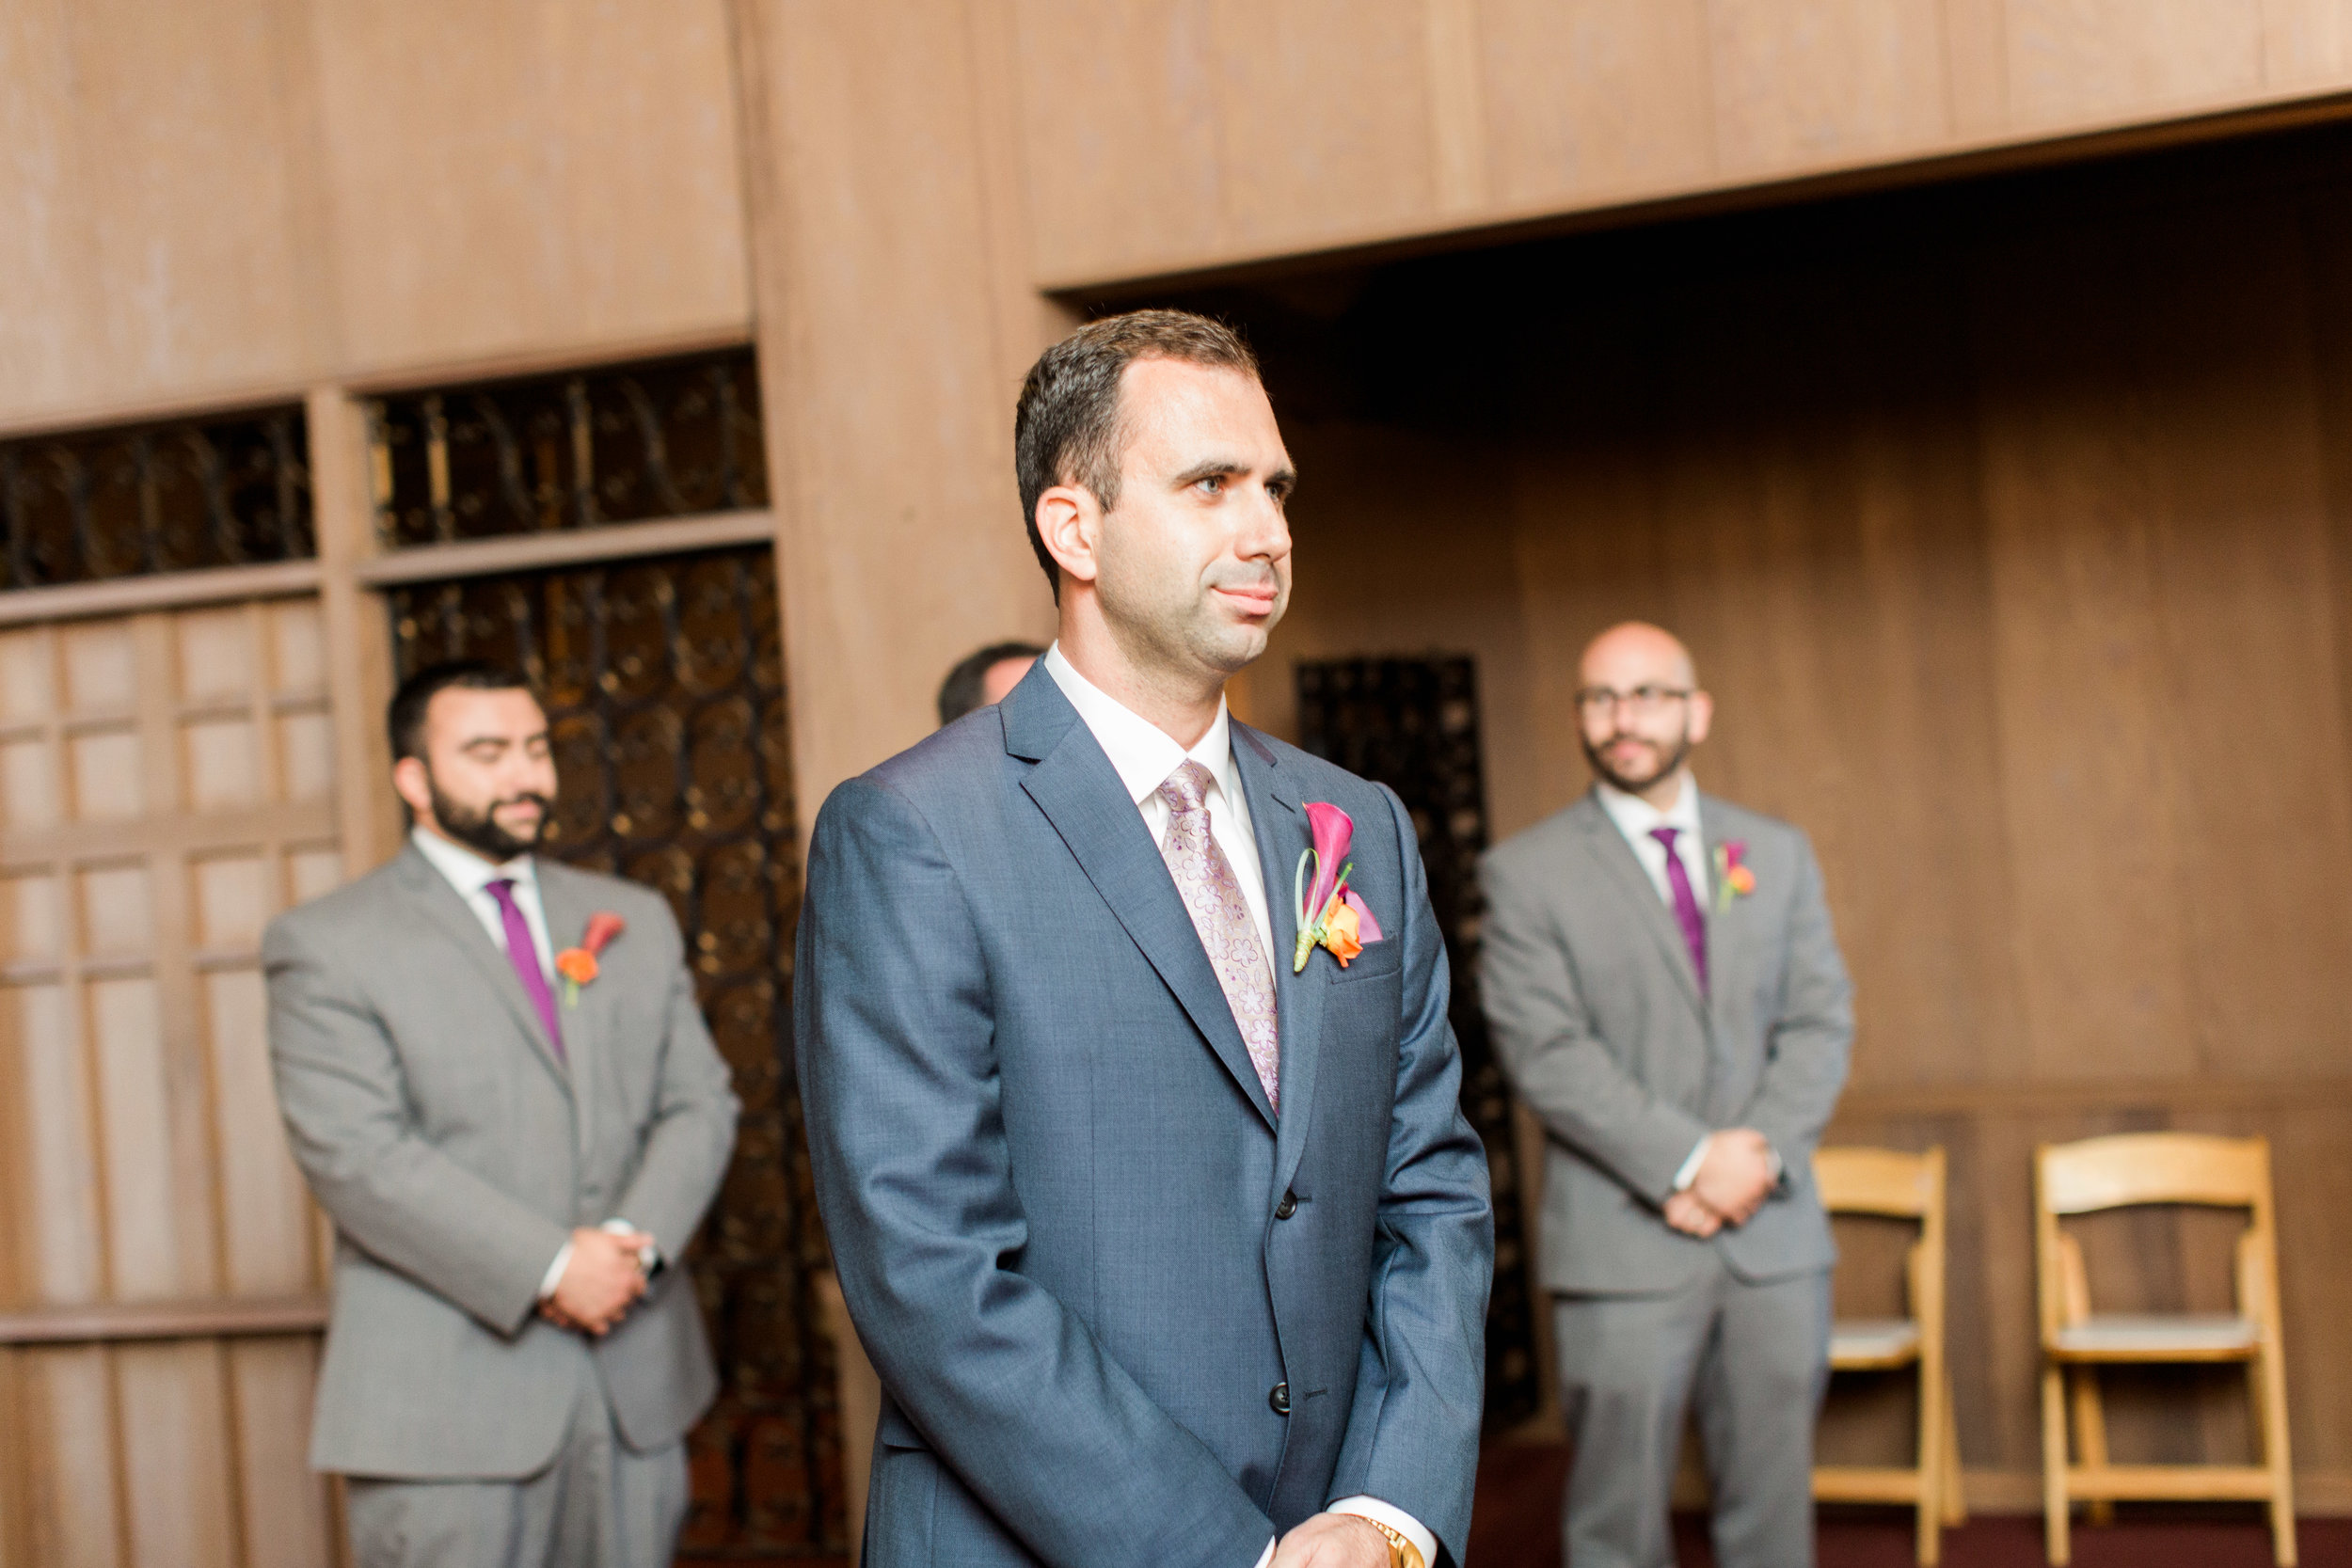 style-inspired-wedding-at-firehouse-8-in-san-francisco-58.jpg